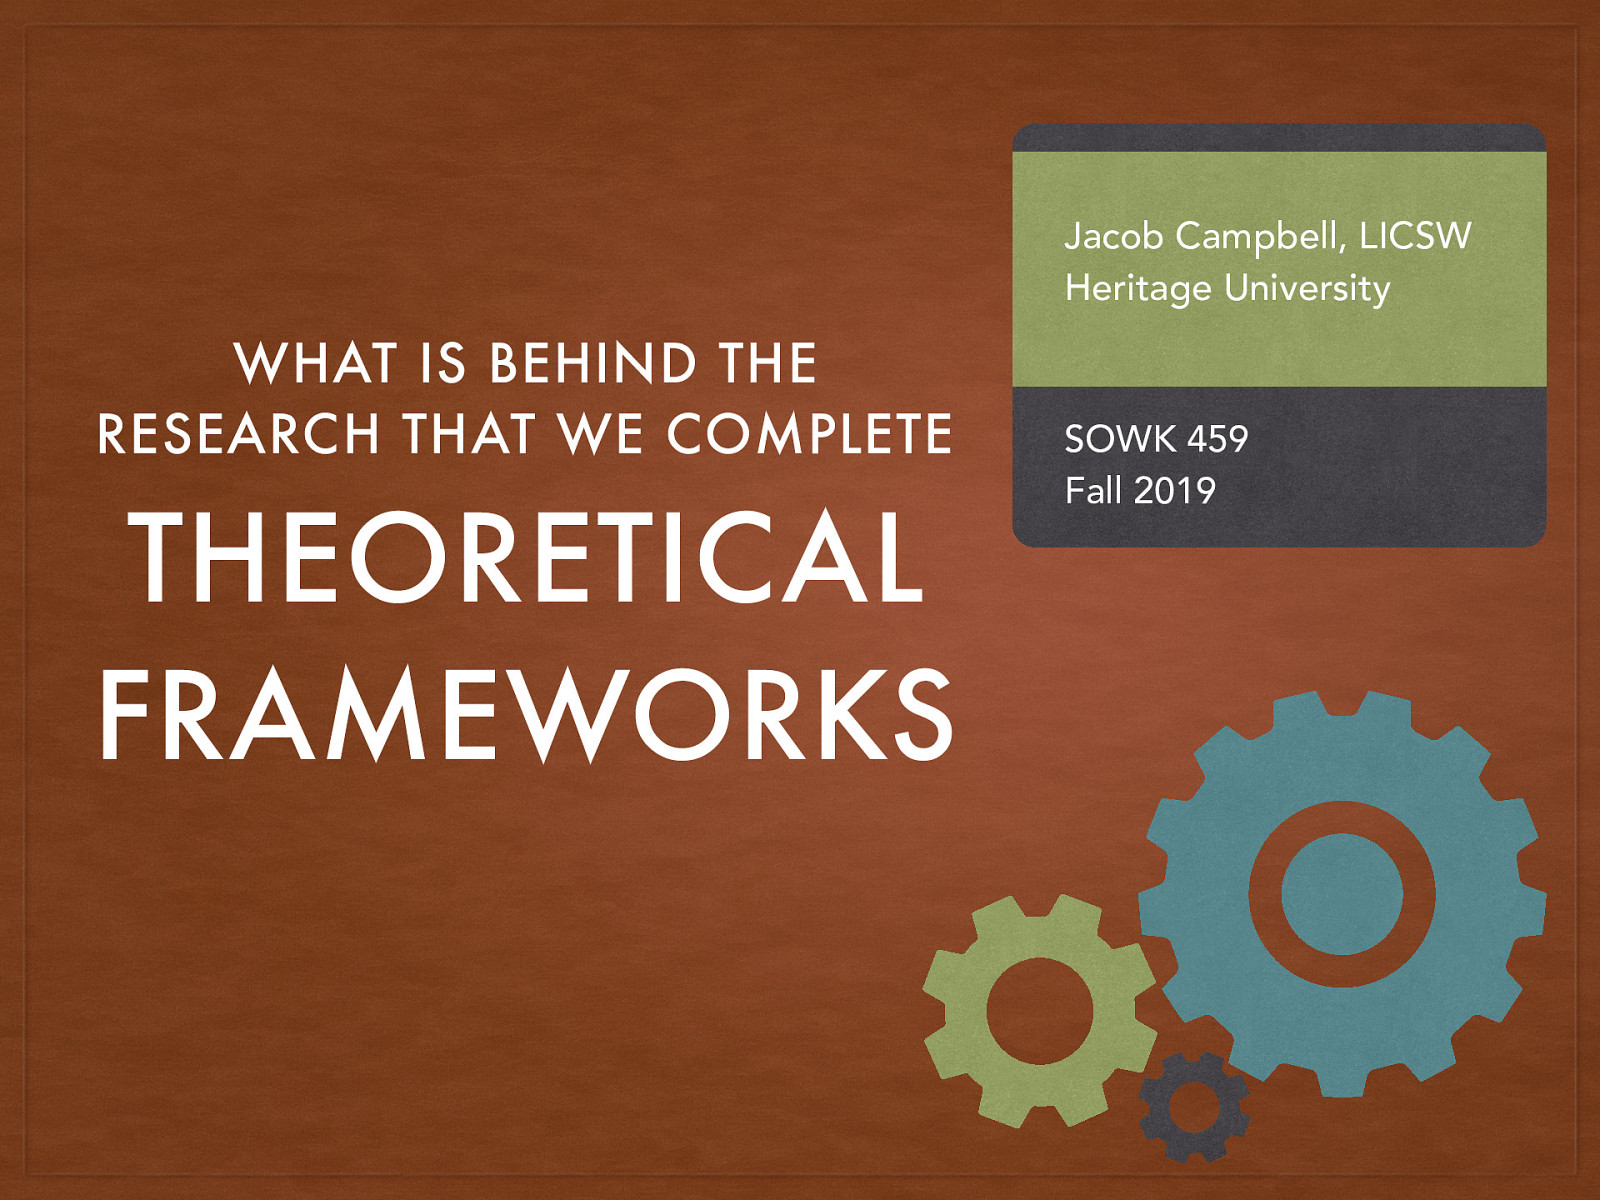 Week 04 - Theoretical Frameworks - What is behind the research that we complete